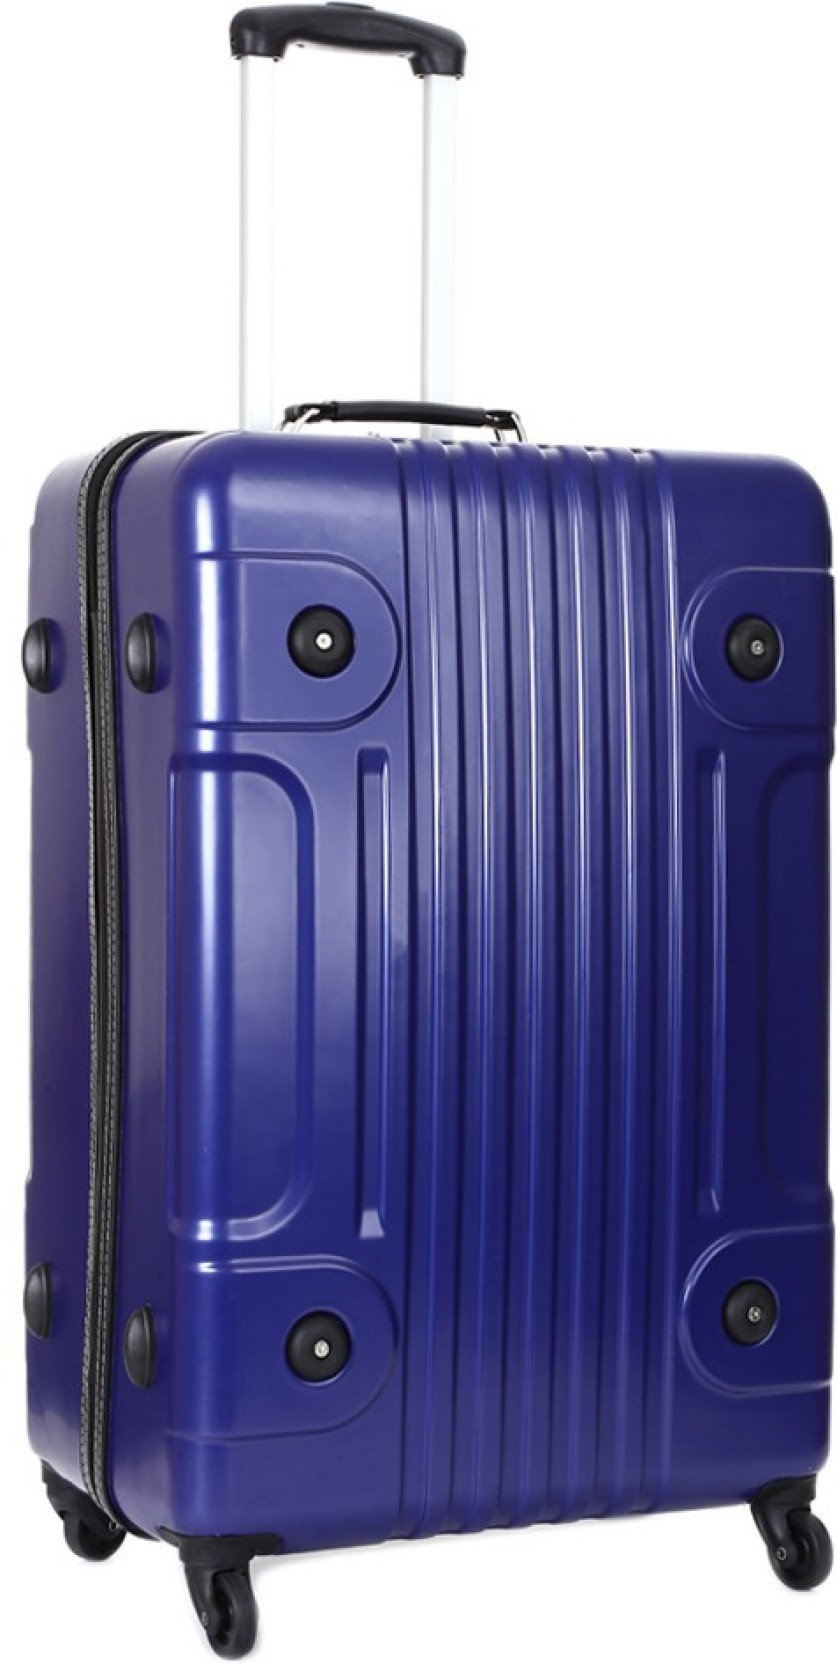 374850651eb Tommy Hilfiger Austin Exclusive Check-in Luggage - 29 inch (Purple)